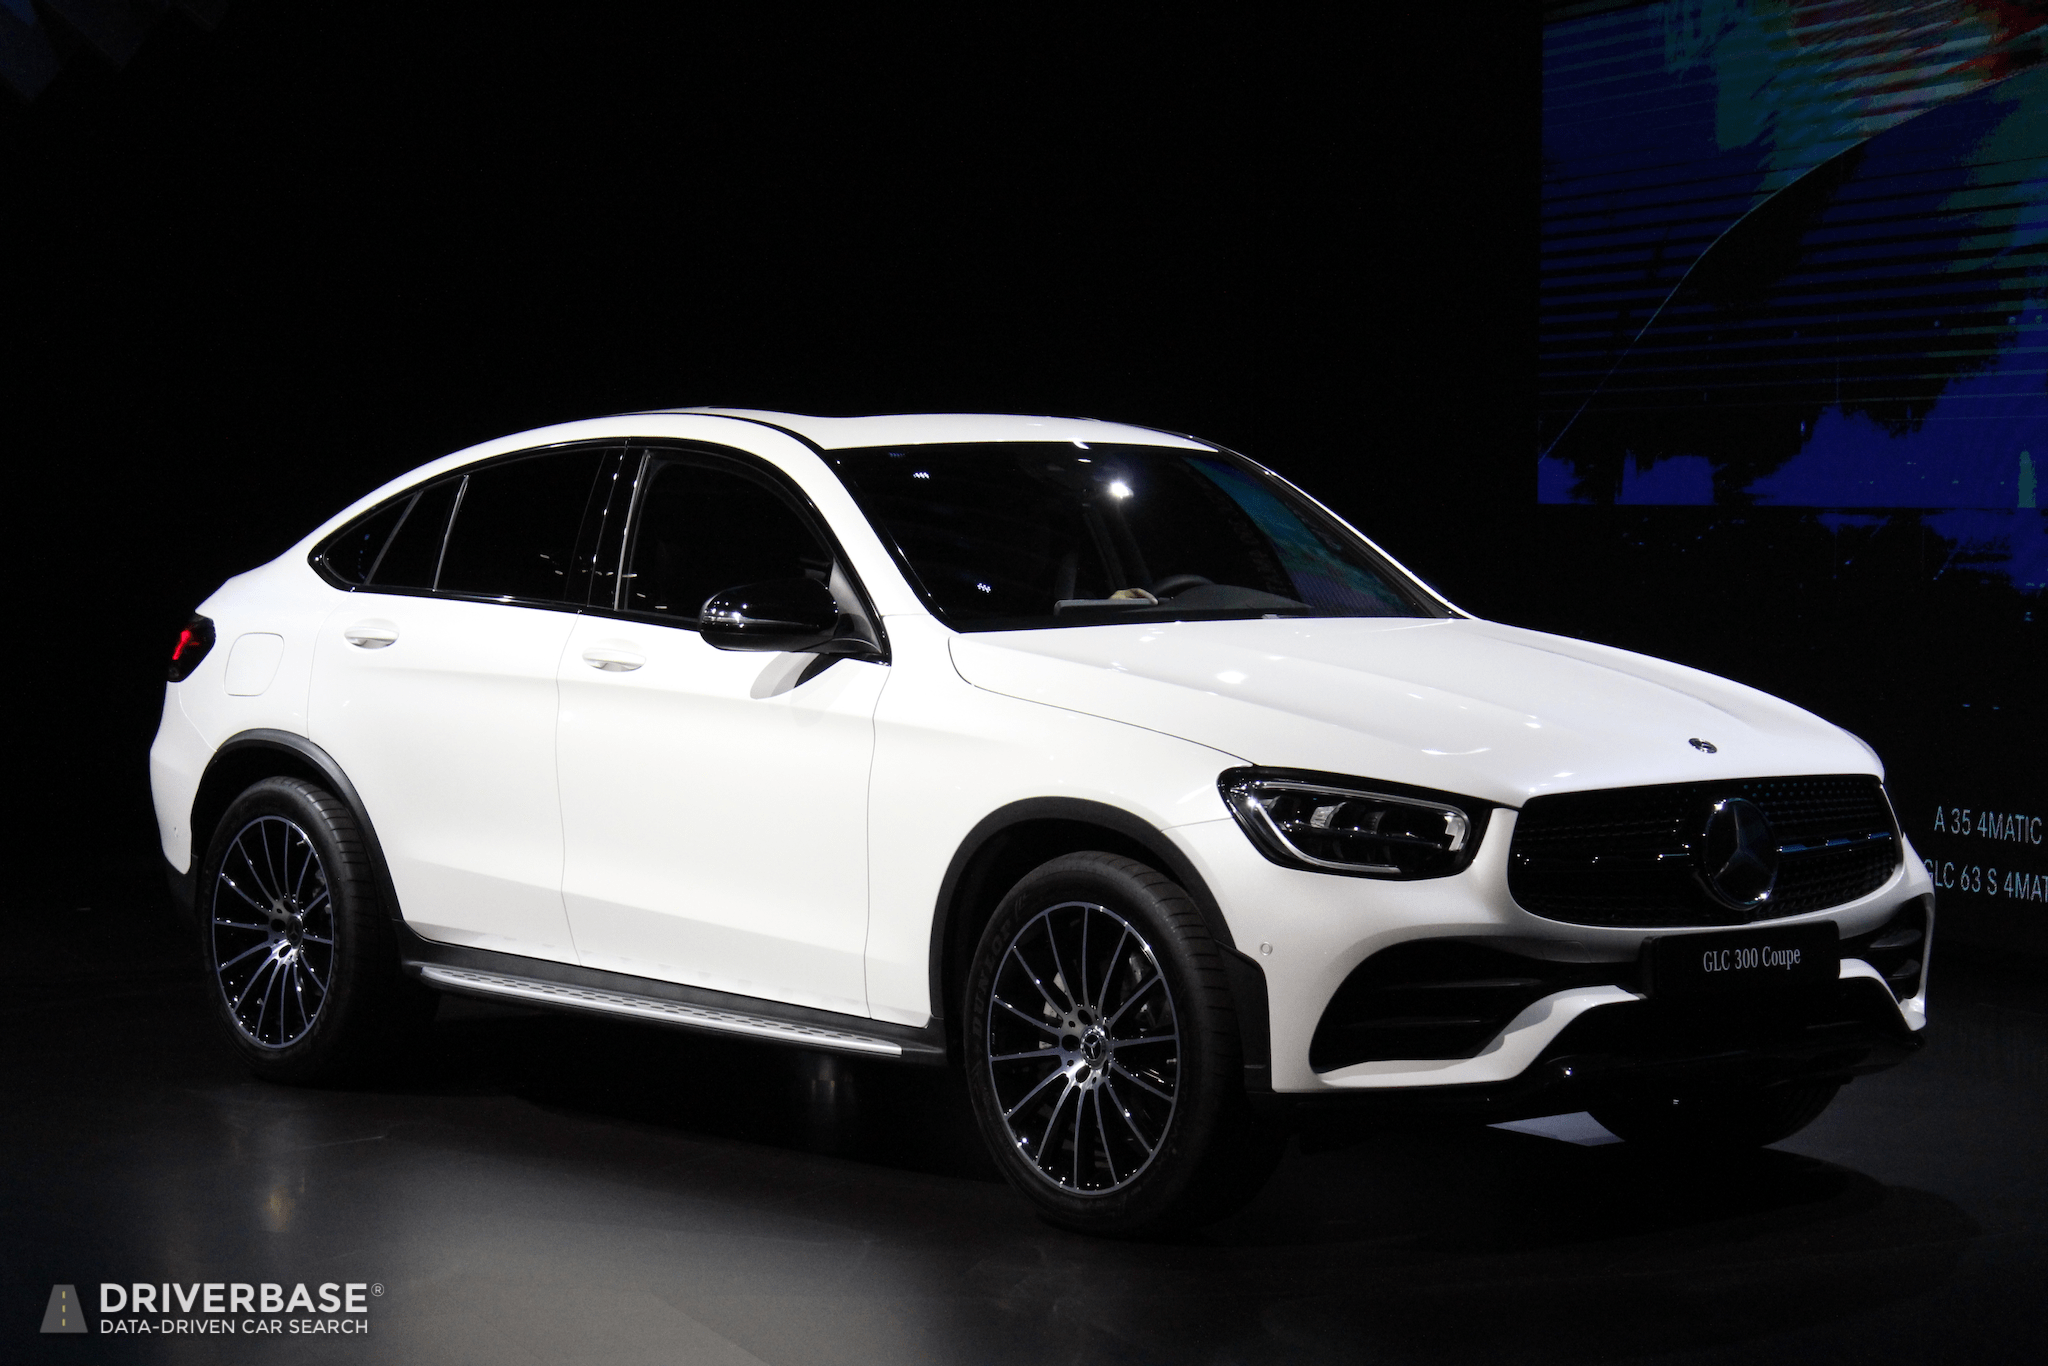 Mercedes Amg Suv >> 2020 Mercedes-Benz GLC 300 Coupe at the 2019 New York Auto ...